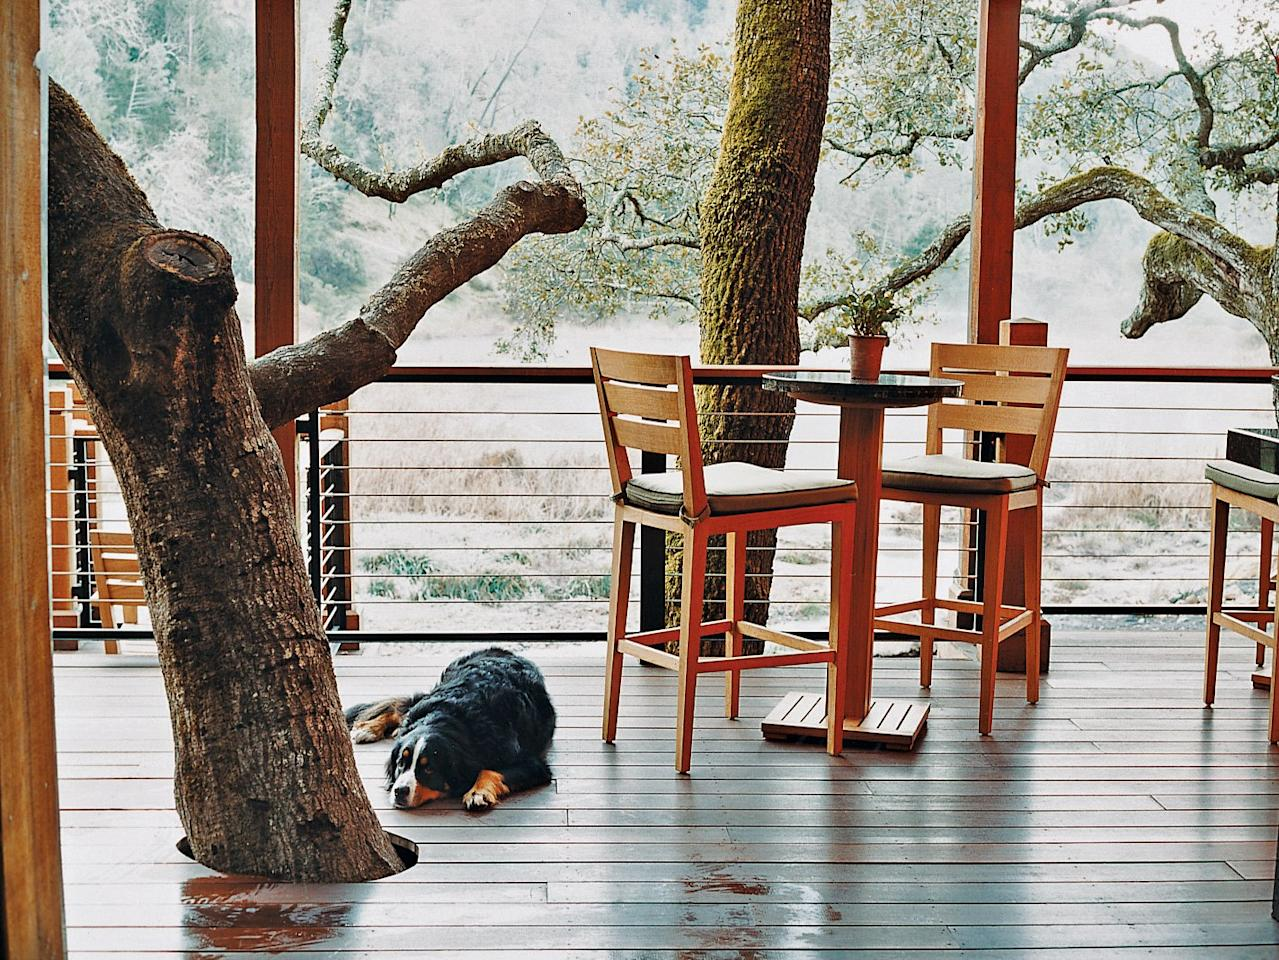 """<p>For $150 per stay, dogs of all sizes can appreciate the epicurean destination that is Napa Valley at the luxe, 157-acre <a href=""""https://www.cntraveler.com/hotels/united-states/calistoga/calistoga-ranch-napa-valley?mbid=synd_yahoo_rss"""">Calistoga Ranch</a>. Look forward to a welcome amenity filled with gourmet goodies and a canine culinary room service menu that includes braised short ribs over brown rice.  Blow up your Instagram stories with the popular """"Applewood-Smoked Bacon Scavenger Hunt"""" (designed by dog lovers), and explore the dog-friendly hiking trails through <a href=""""https://www.cntraveler.com/gallery/editors-picks-our-favorite-wine-country-hotels?mbid=synd_yahoo_rss"""">wine country's</a> surrounding woodlands.</p> <p><strong>Book Now</strong>: <a href=""""https://prf.hn/click/camref:1100l3xo8/pubref:CNT/destination:https://www.expedia.com/Calistoga-Hotels-Calistoga-Ranch.h920260.Hotel-Information"""" rel=""""nofollow"""">Expedia.com</a></p>"""